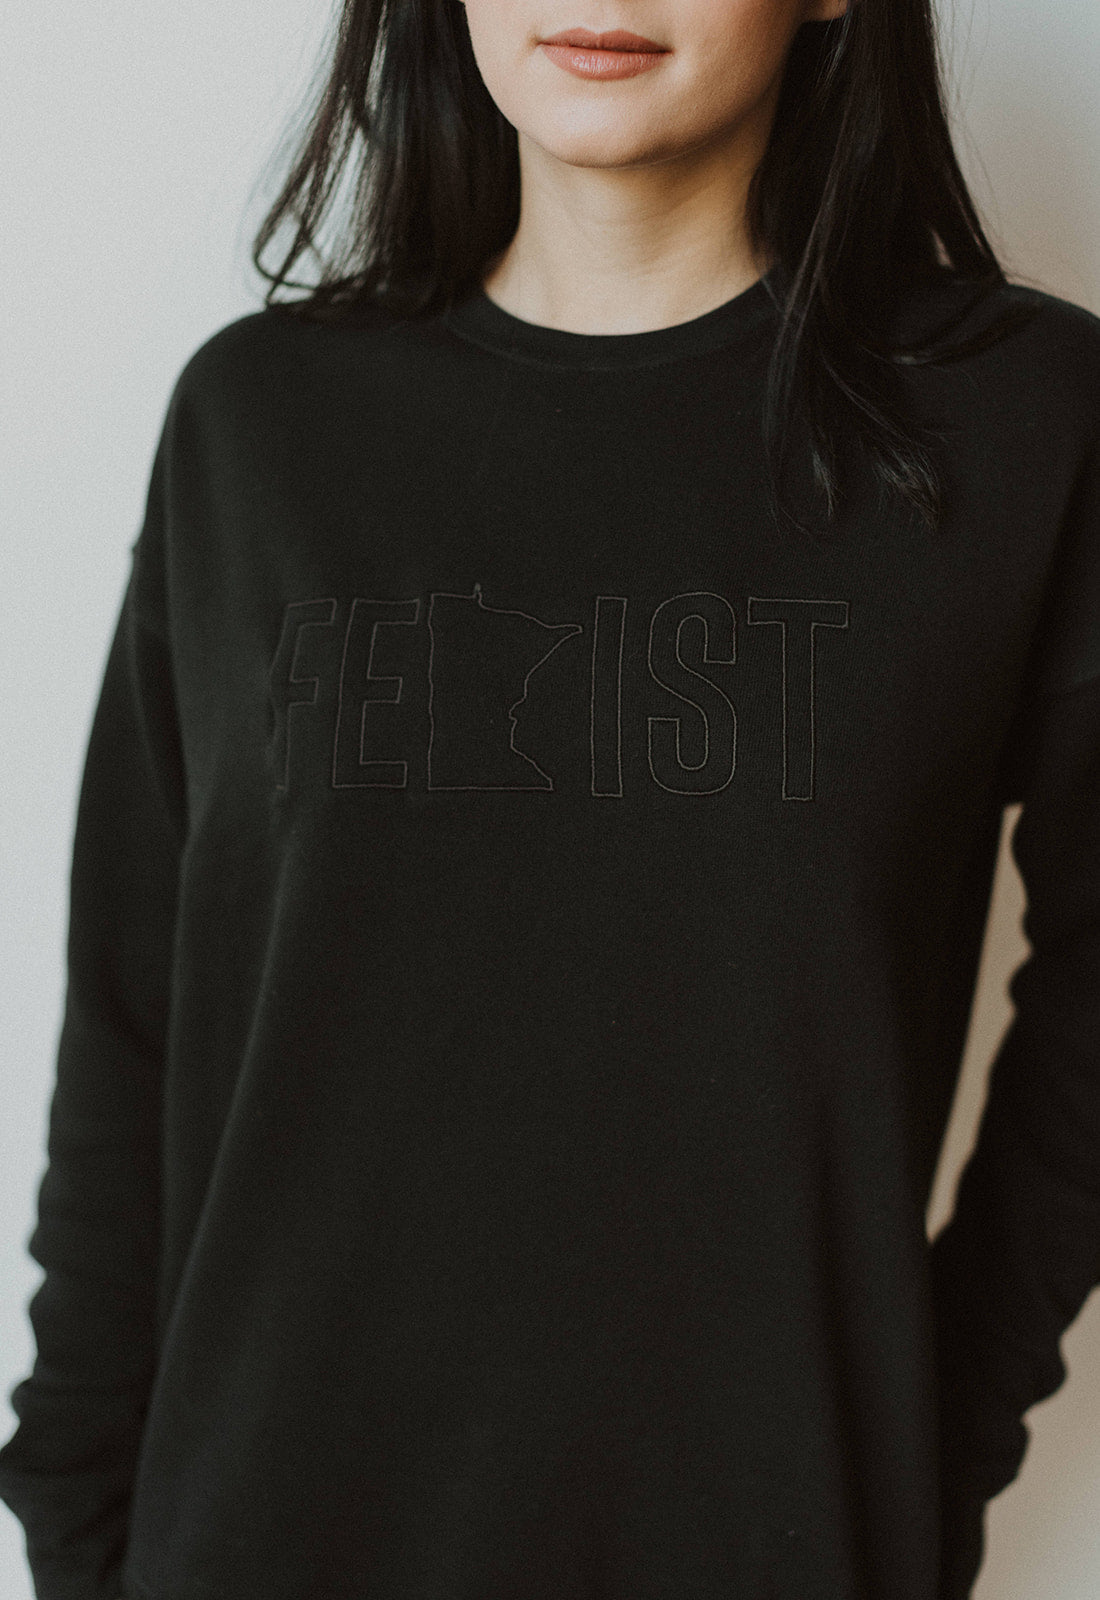 MnFem Embroidered Black Crew